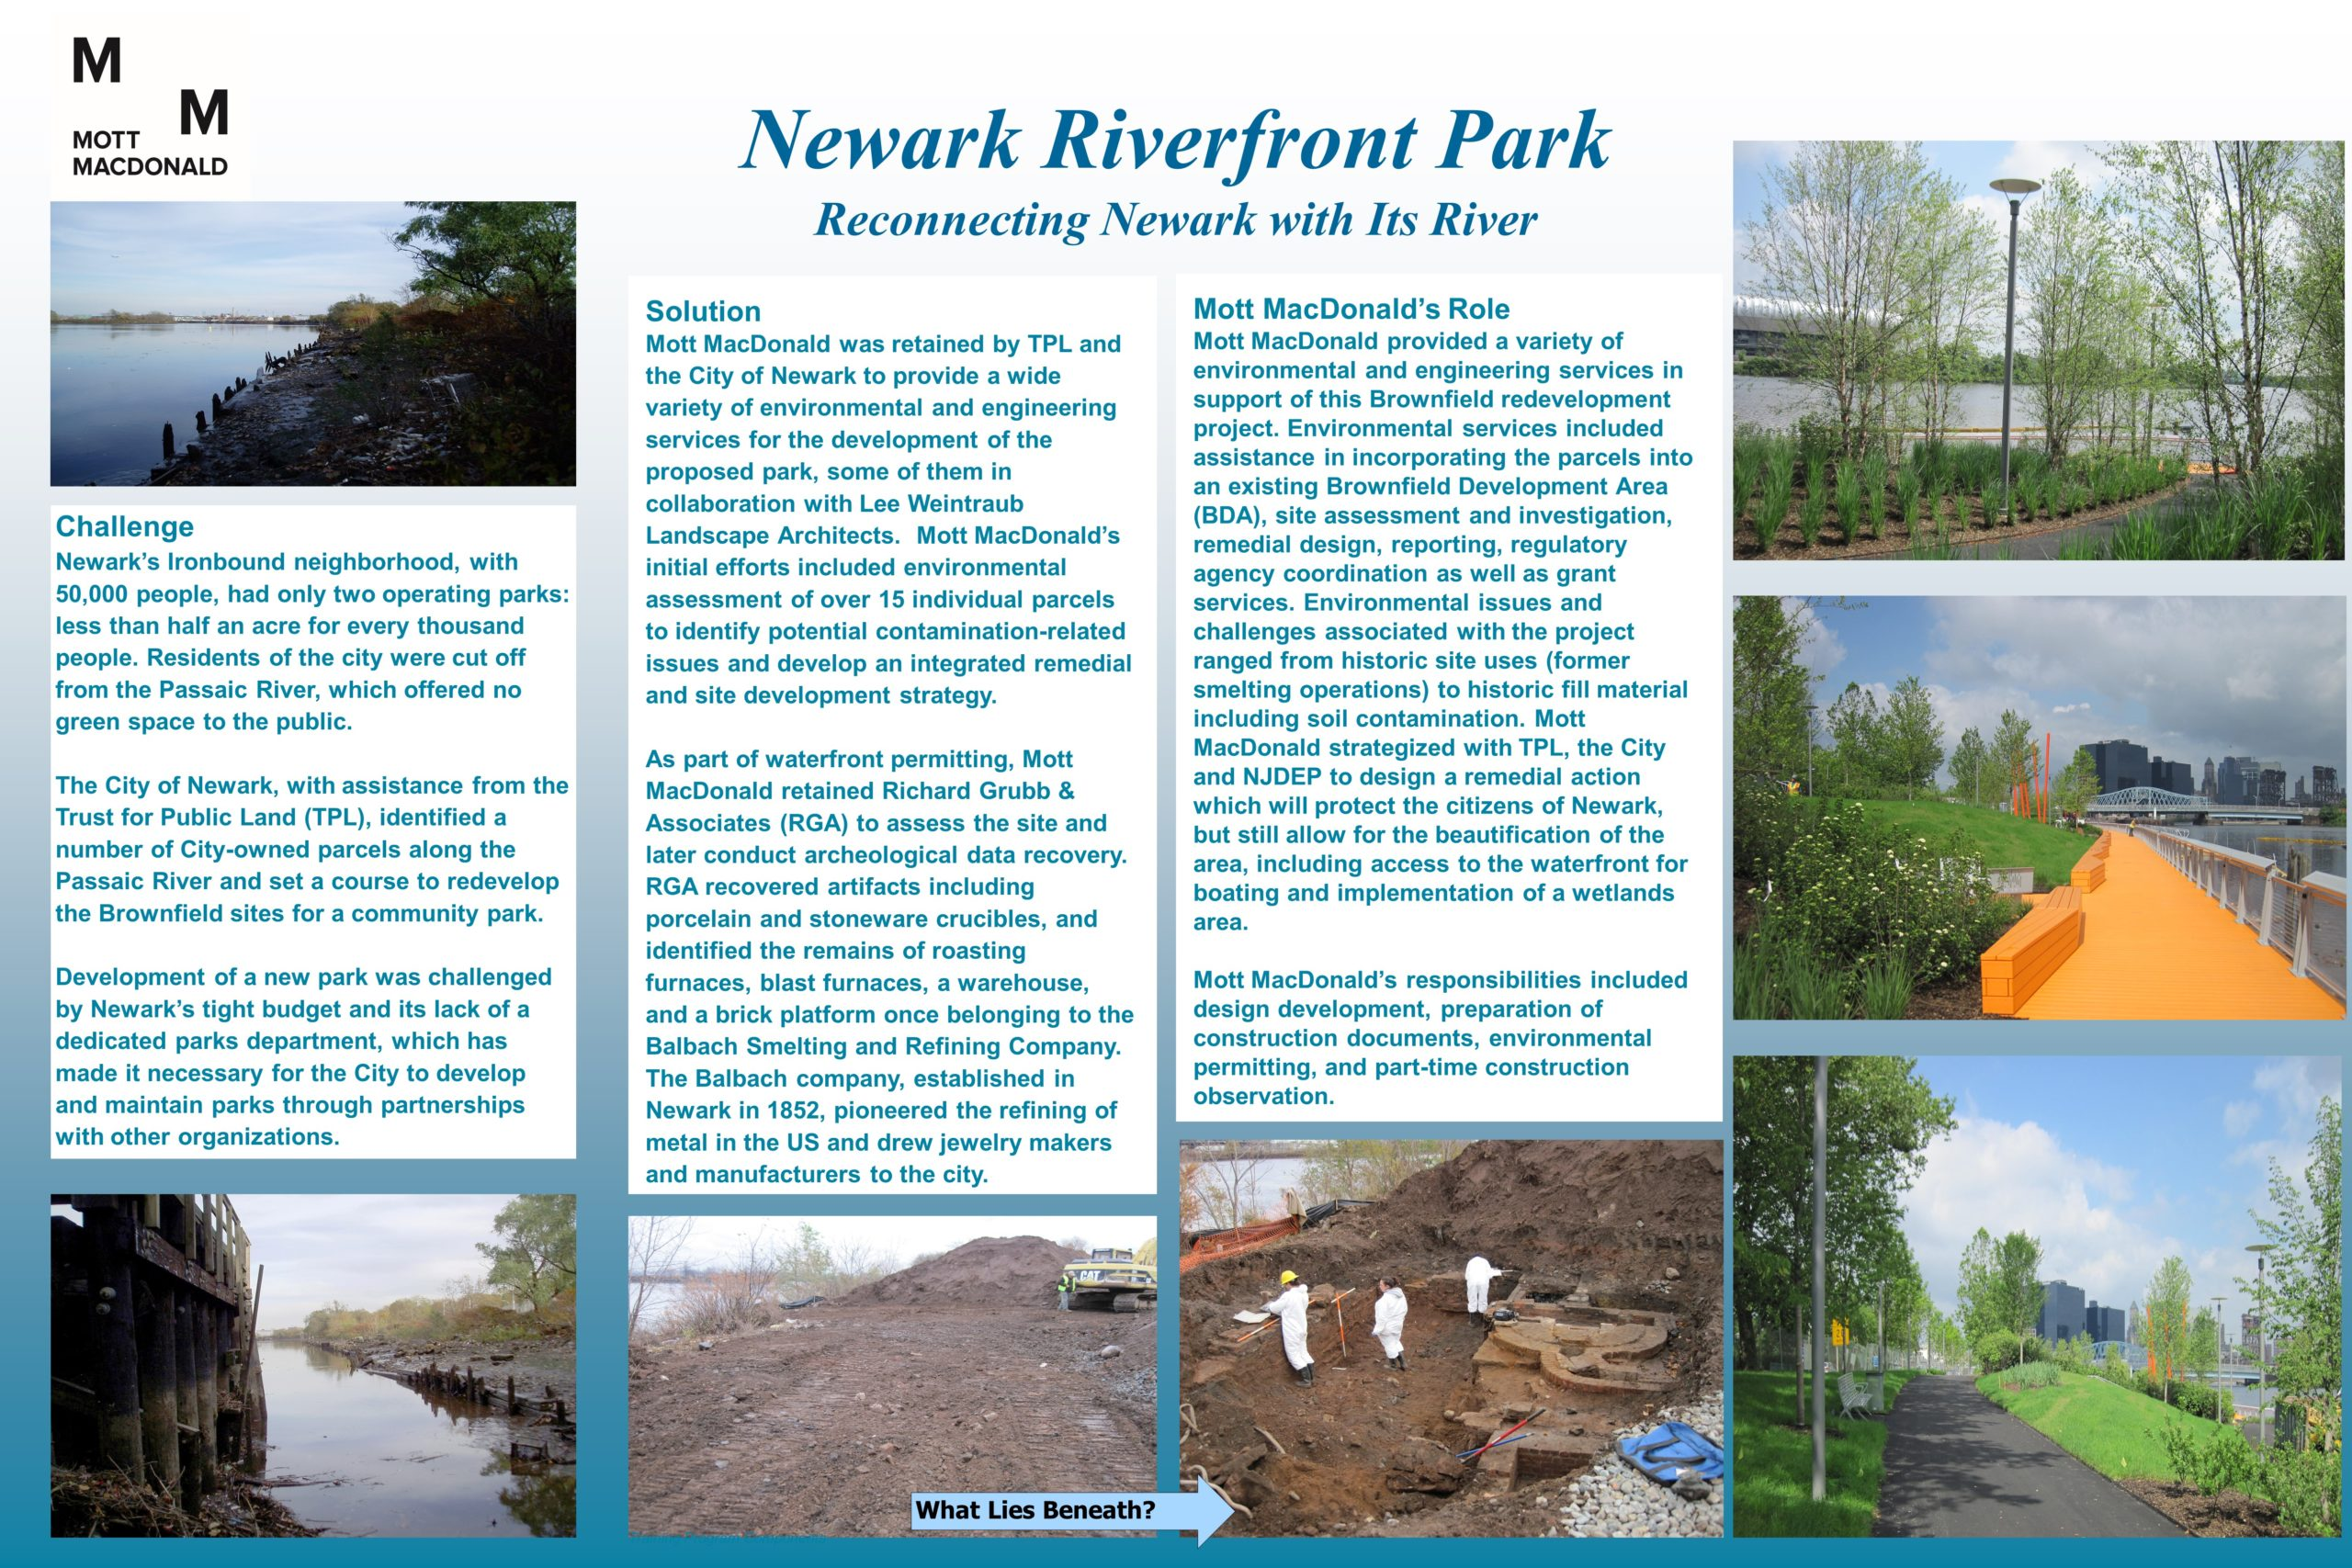 newark riverfront park